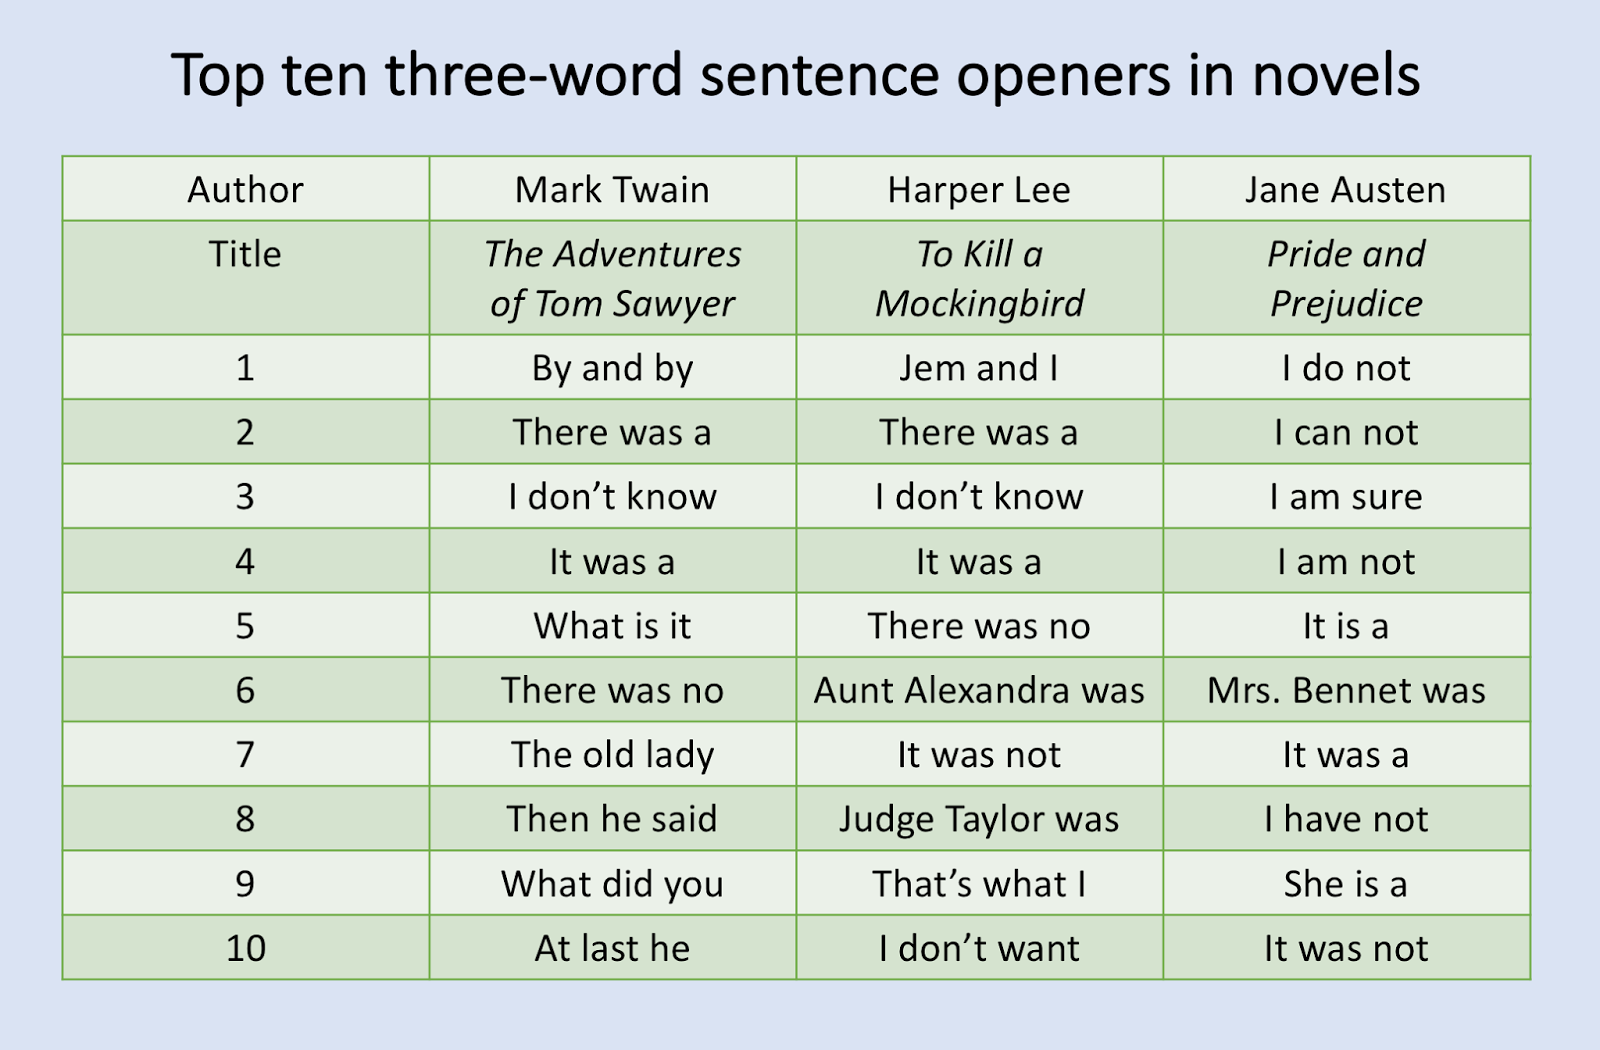 joyful public speaking from fear to joy  mr blatt also discusses the top ten most popular three word sentence openers on pages 153 and 154 he shows tables them for nine novels